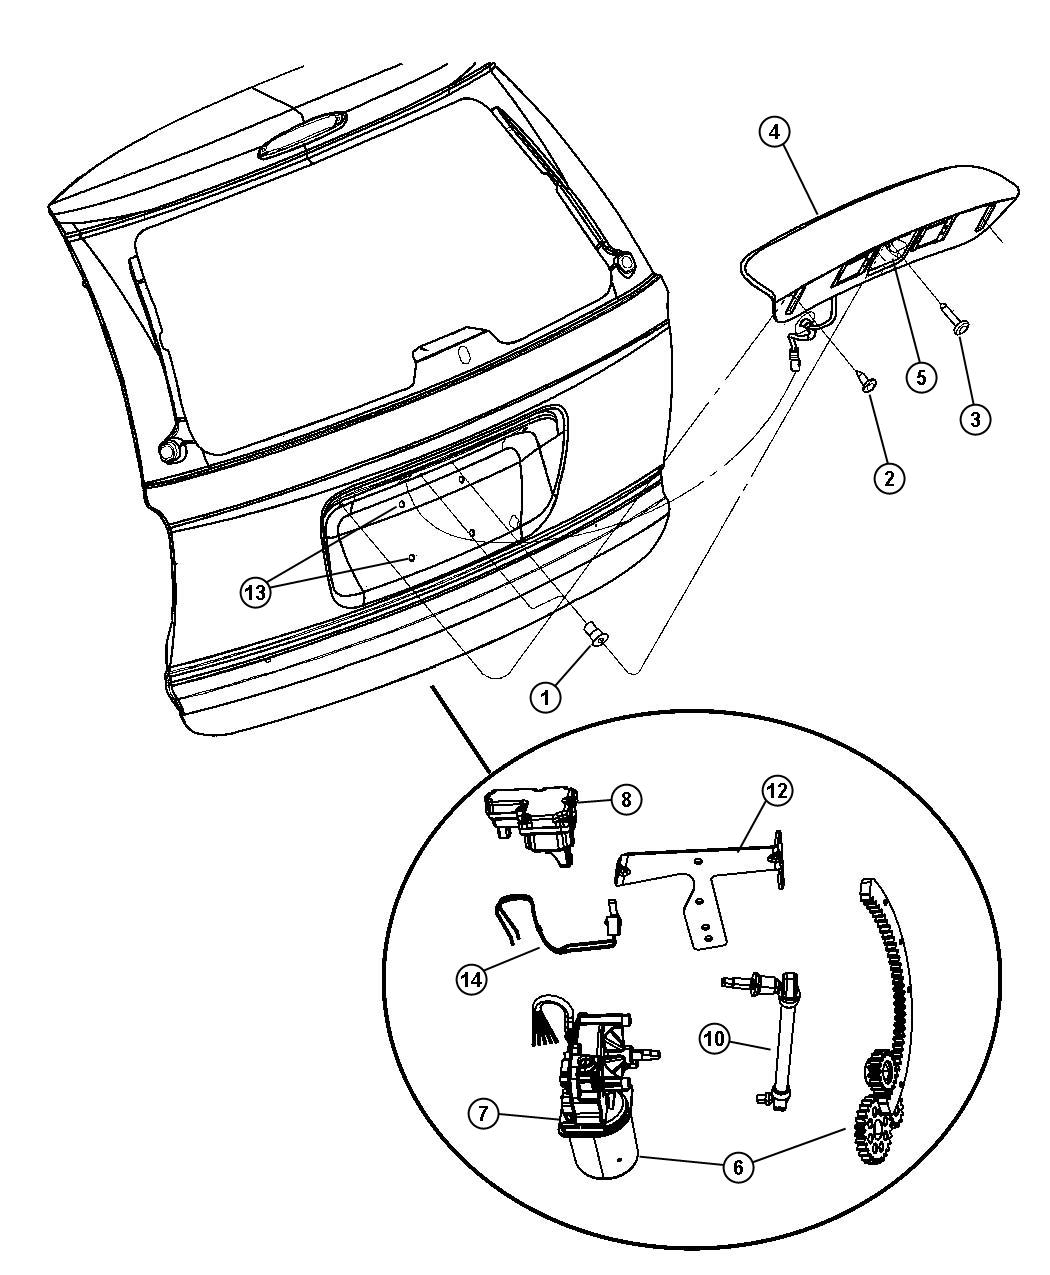 Service manual [2005 Dodge Grand Caravan Liftgate Panel